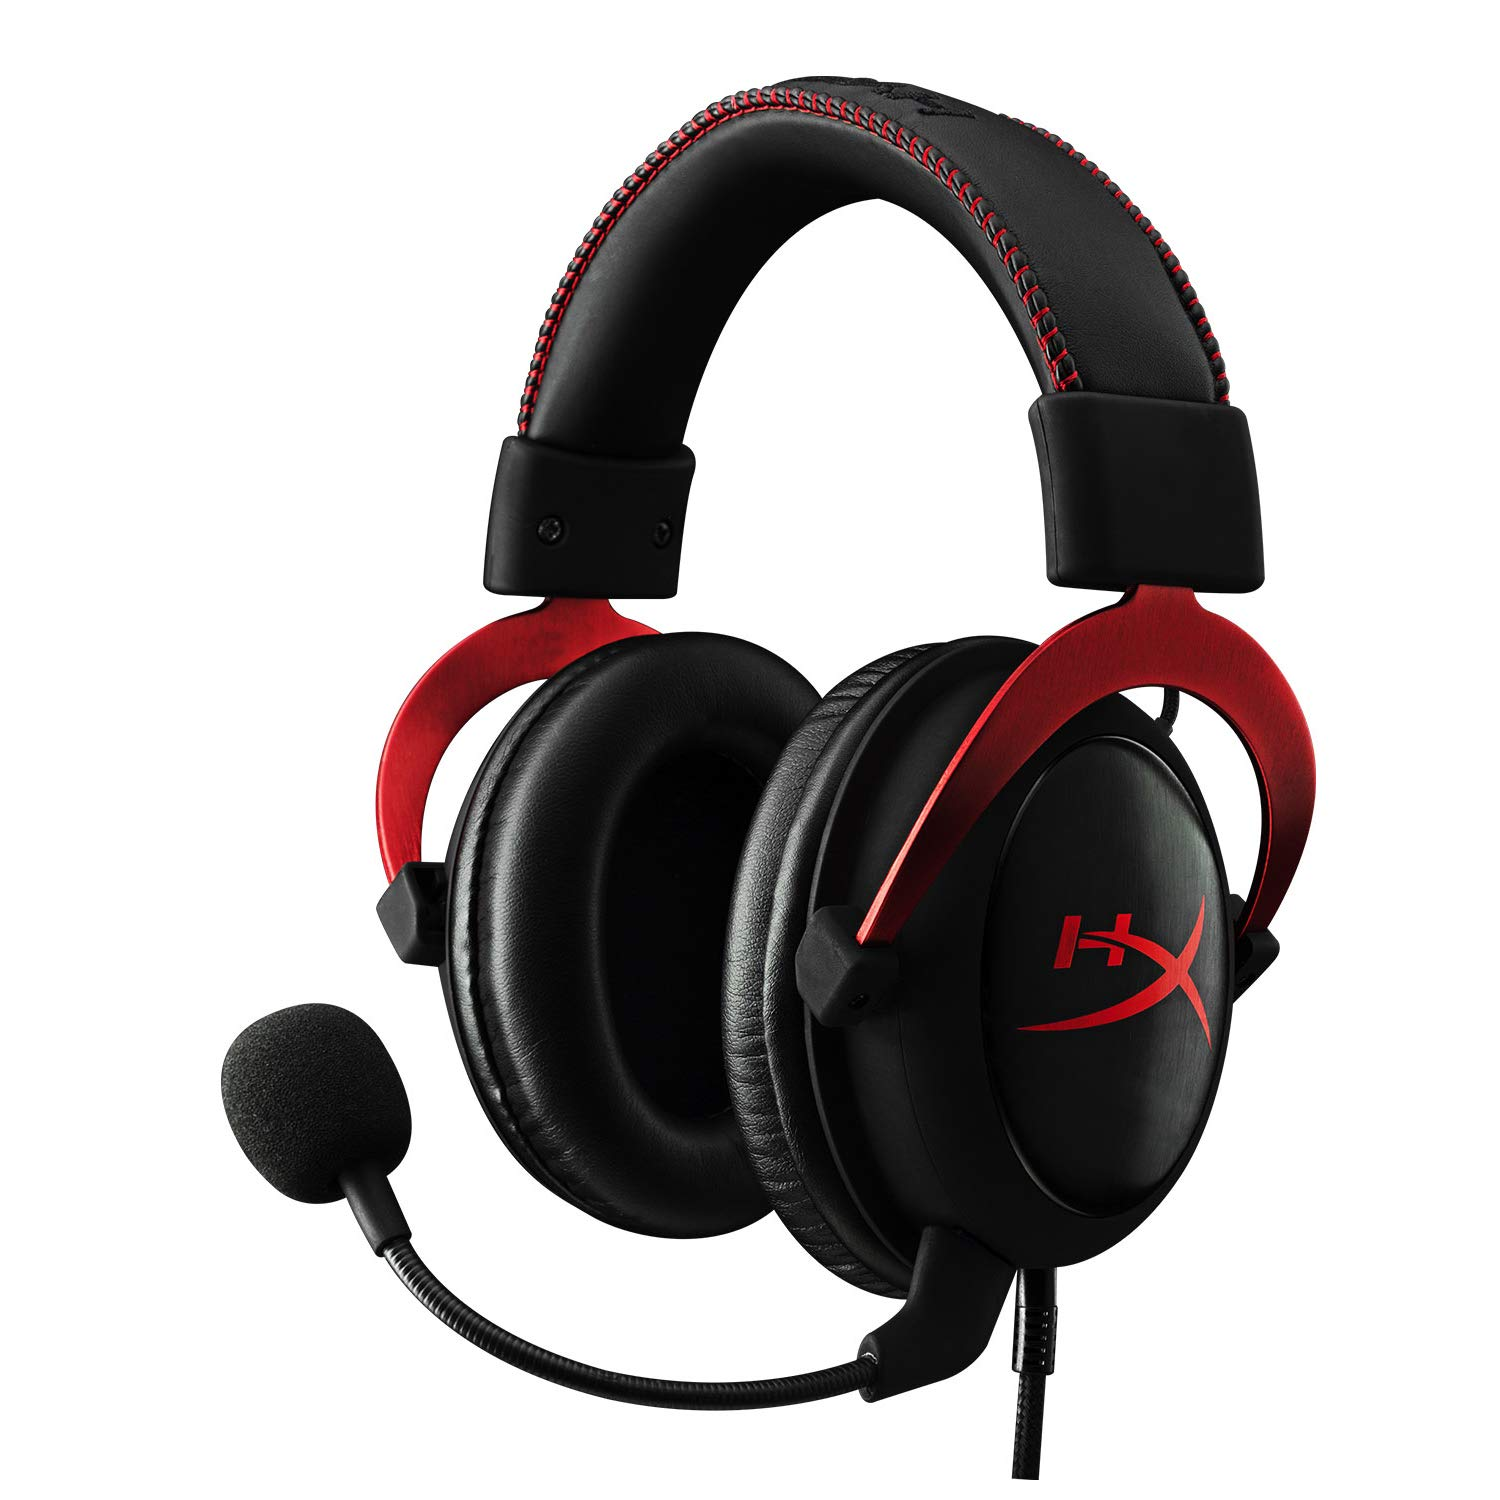 The Best 7.1 Gaming Headsets (Reviewed December 2019) 2